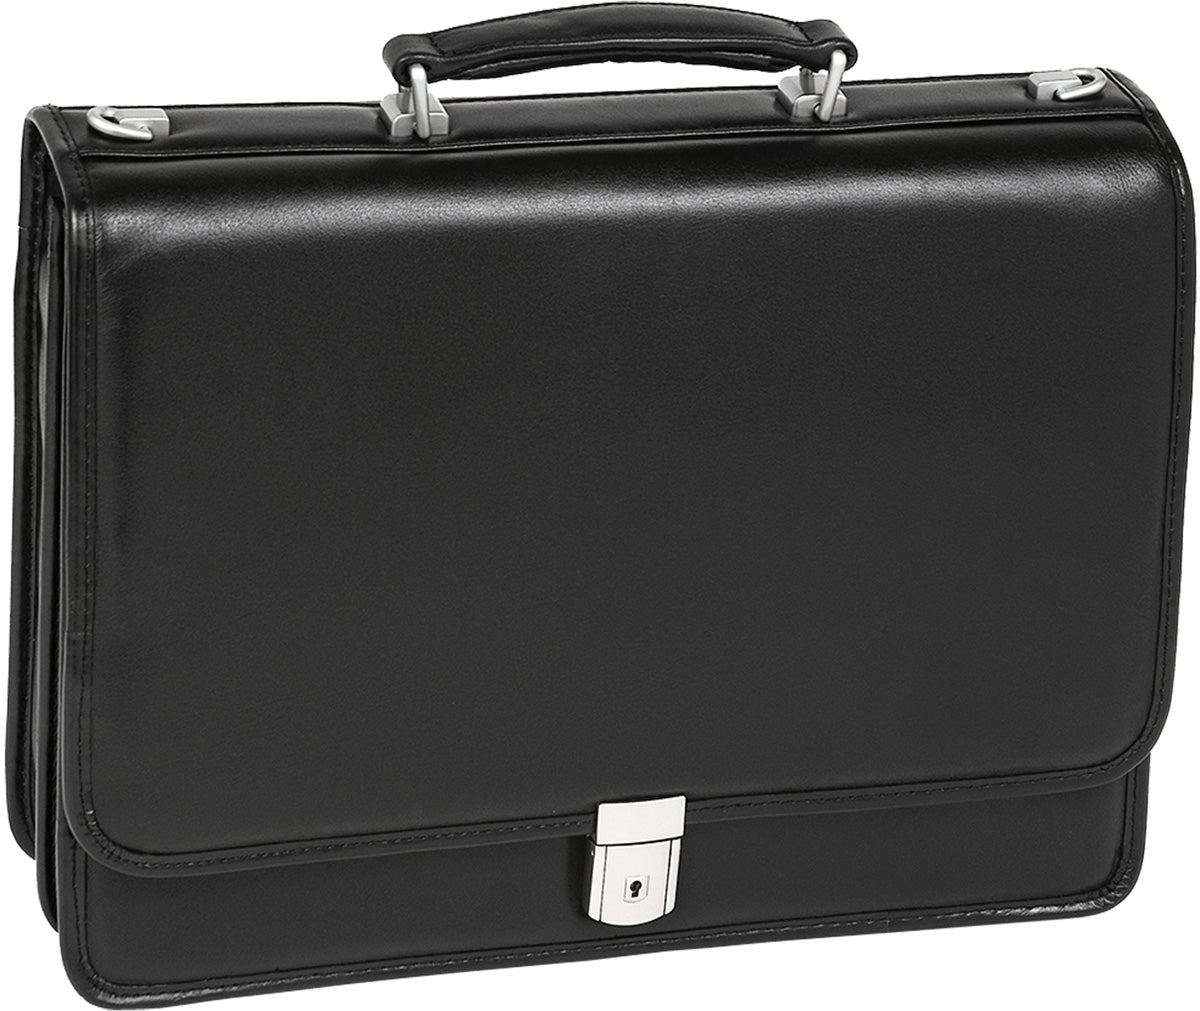 McKlein L Series Lexington Leather Flapover Dbl Compartment Laptop